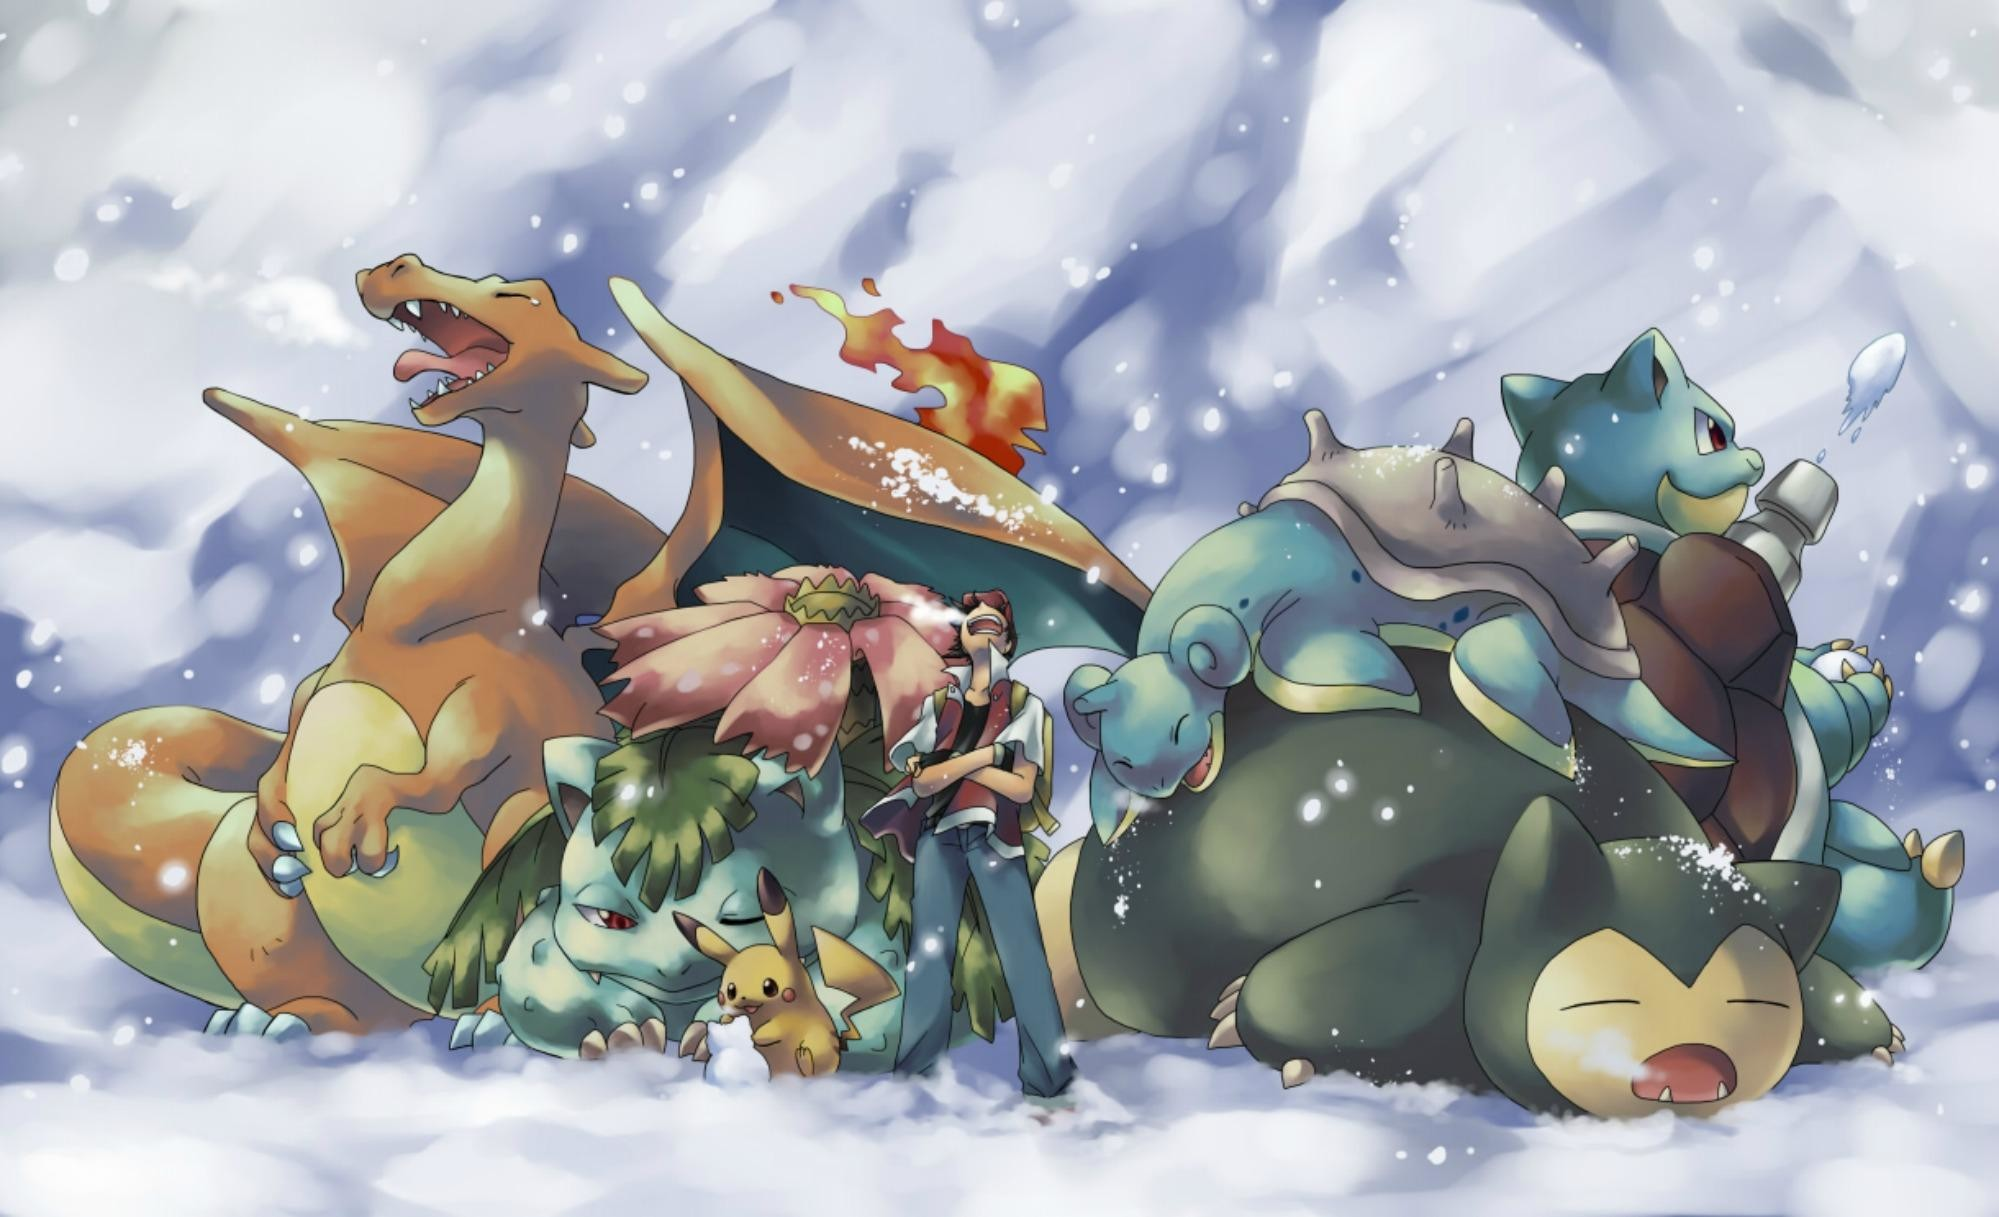 1920x1080 Pokemon Wallpaper Starters Wallpapers Hd Resolution Sdeerwallpaper 1920A 1080